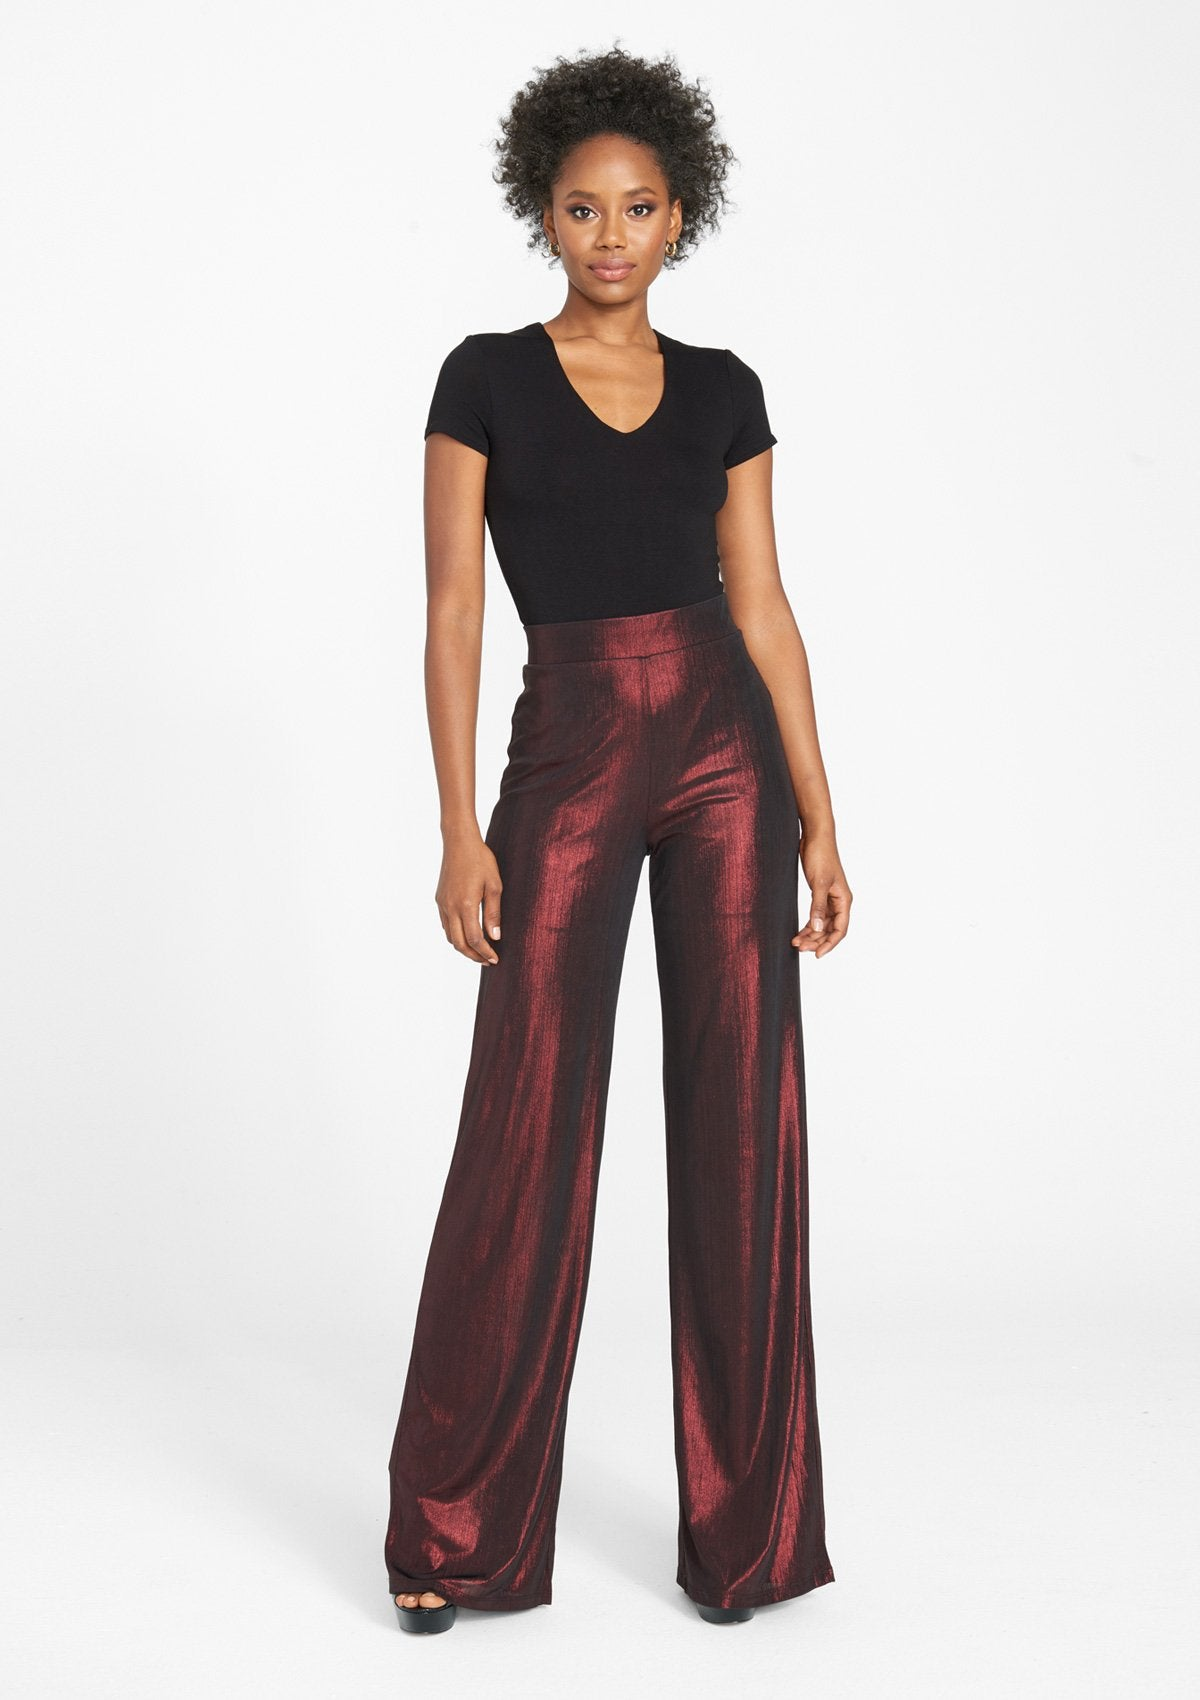 Alloy Apparel Tall Metallic Wide Leg Pant for Women in Burgundy Size XL   Polyester